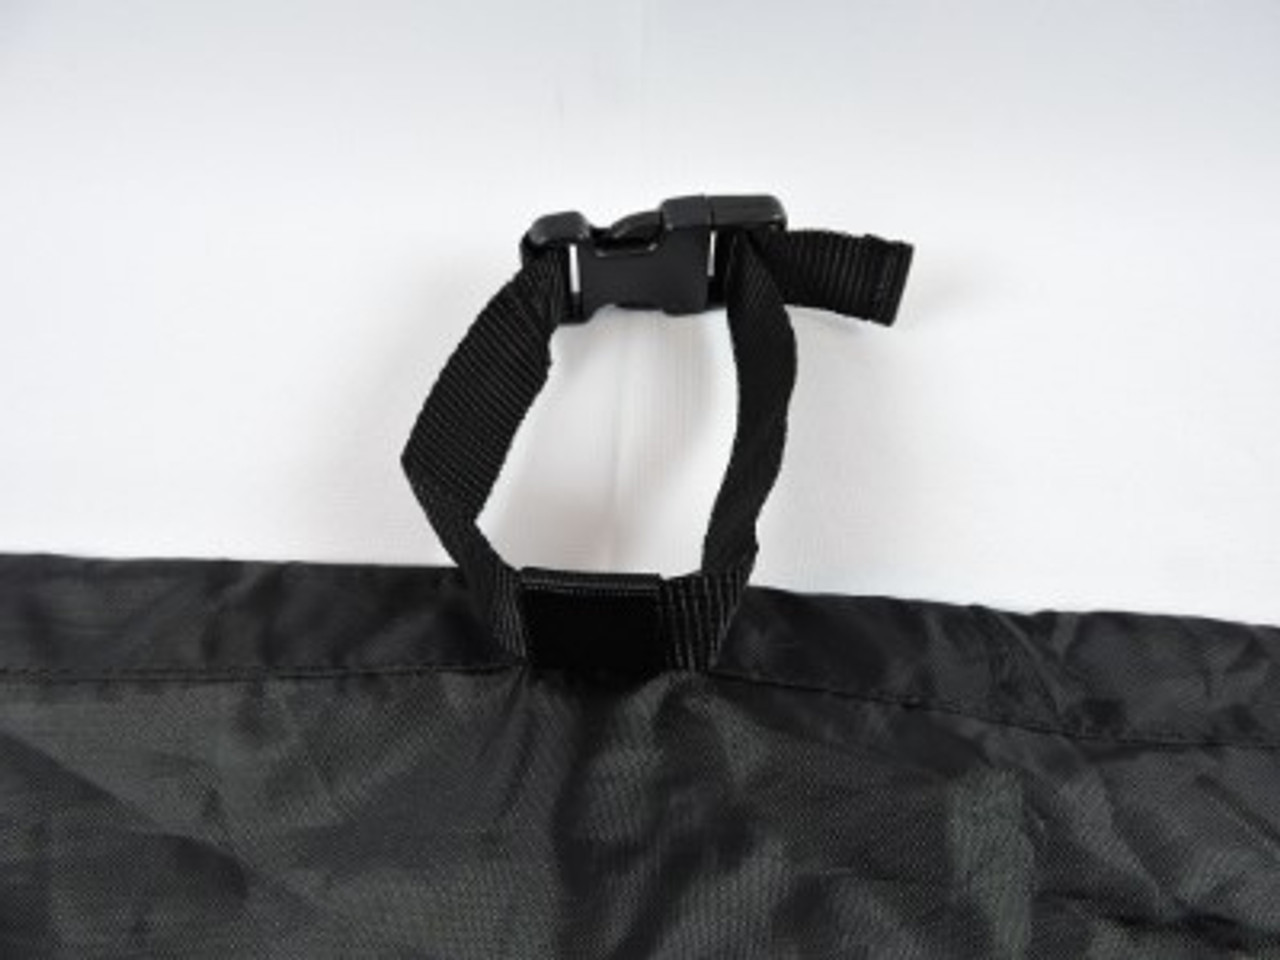 Advantage loop with strap and buckle for secure tie down